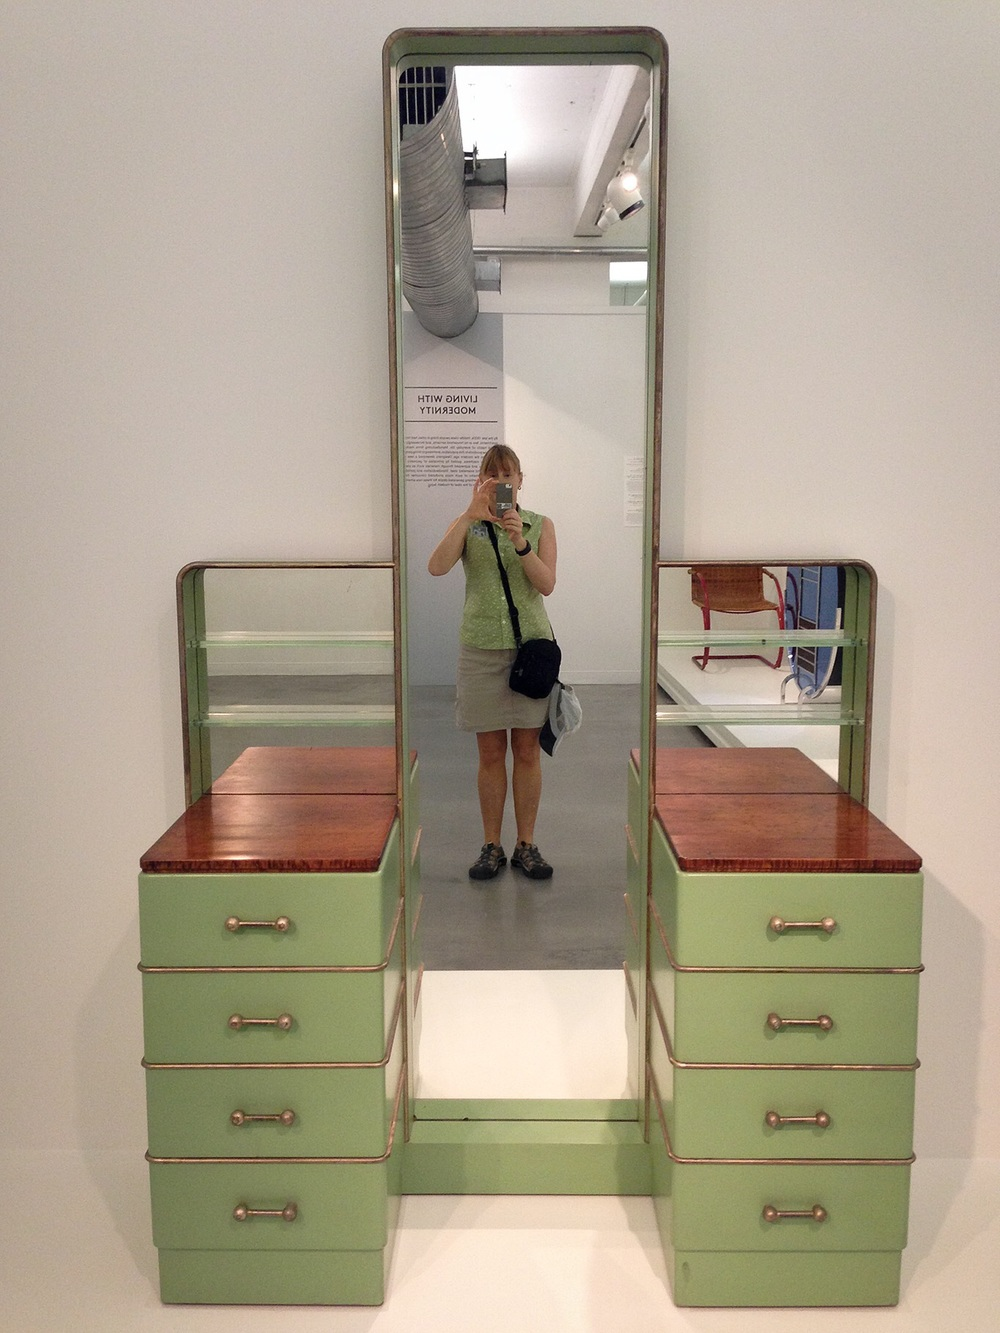 Here is an interesting and colorful metal Art Deco style vanity, which I happened to colorfully matched that day!